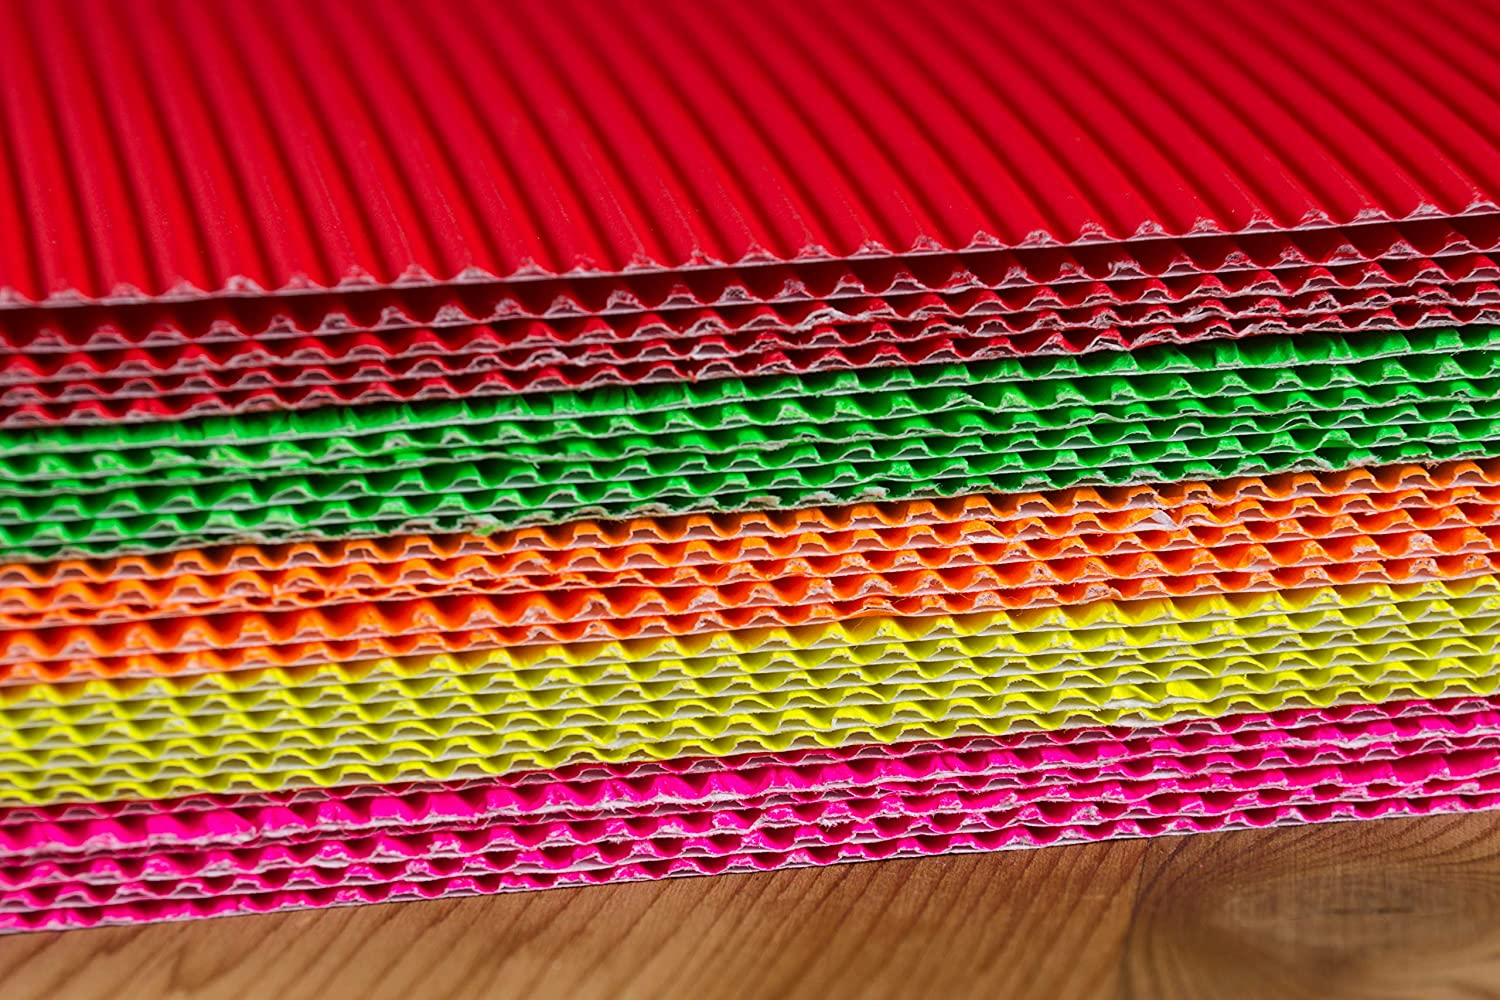 Cardboard Sheets Corrugated Sheets 30-Pack Corrugated Paper for Craft and DIY Projects Various Colors 8.25 x 11.75 Inches